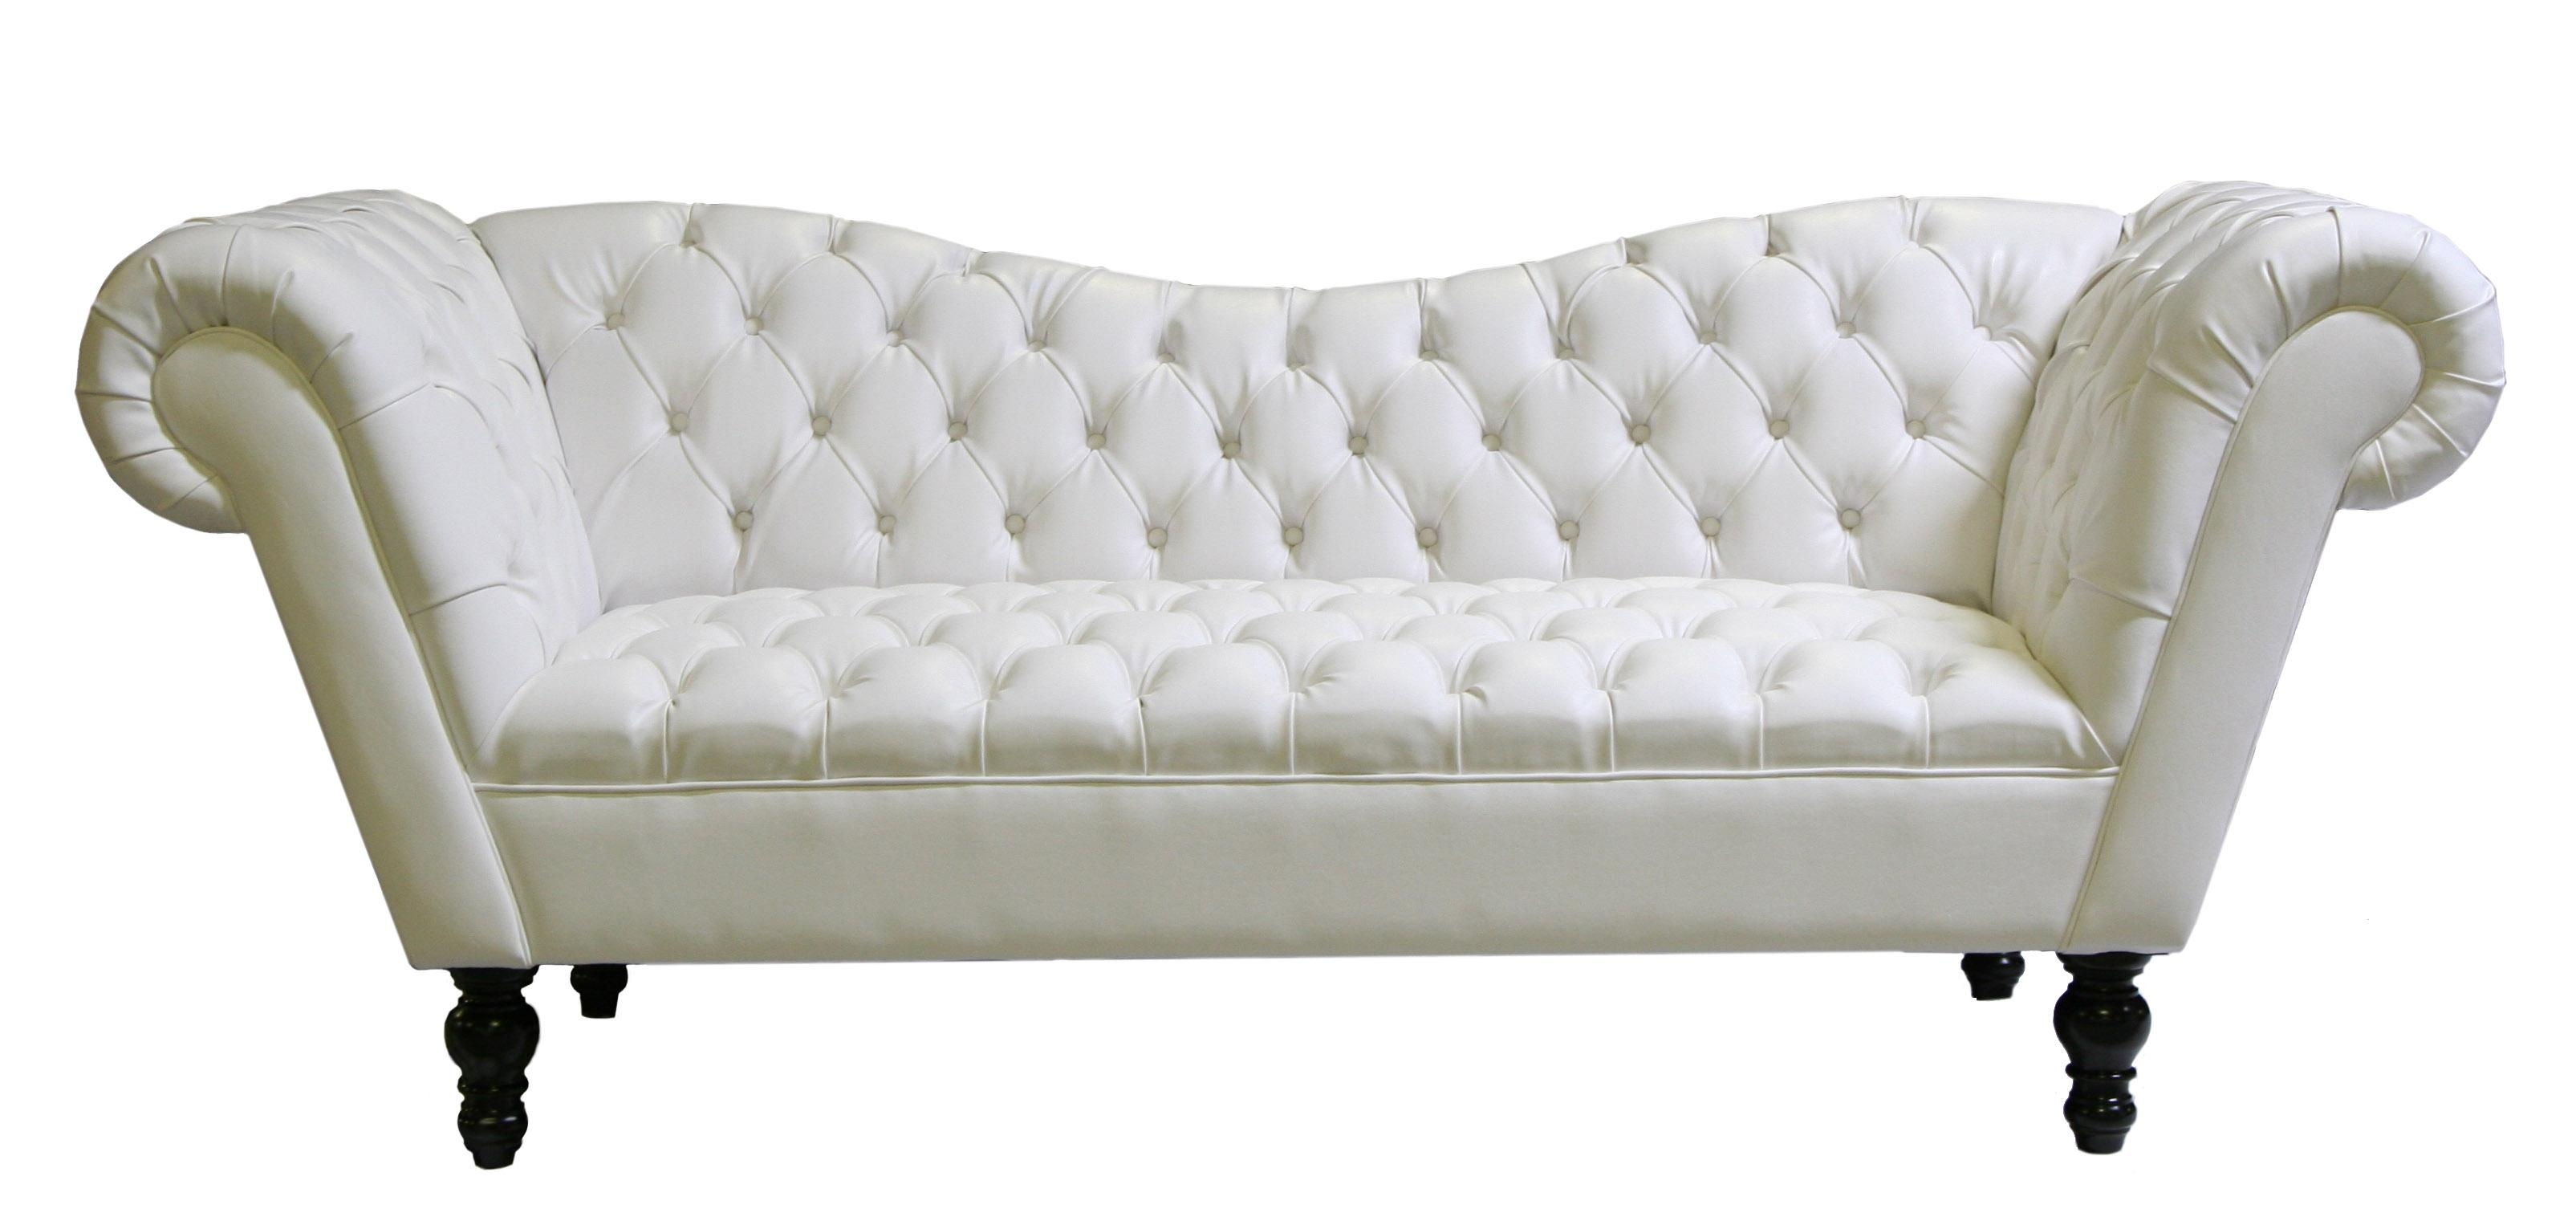 Lovely Modern Single Leather Sofas Asd12015 Sofa | Ciov Within Fancy Sofas (Image 14 of 20)